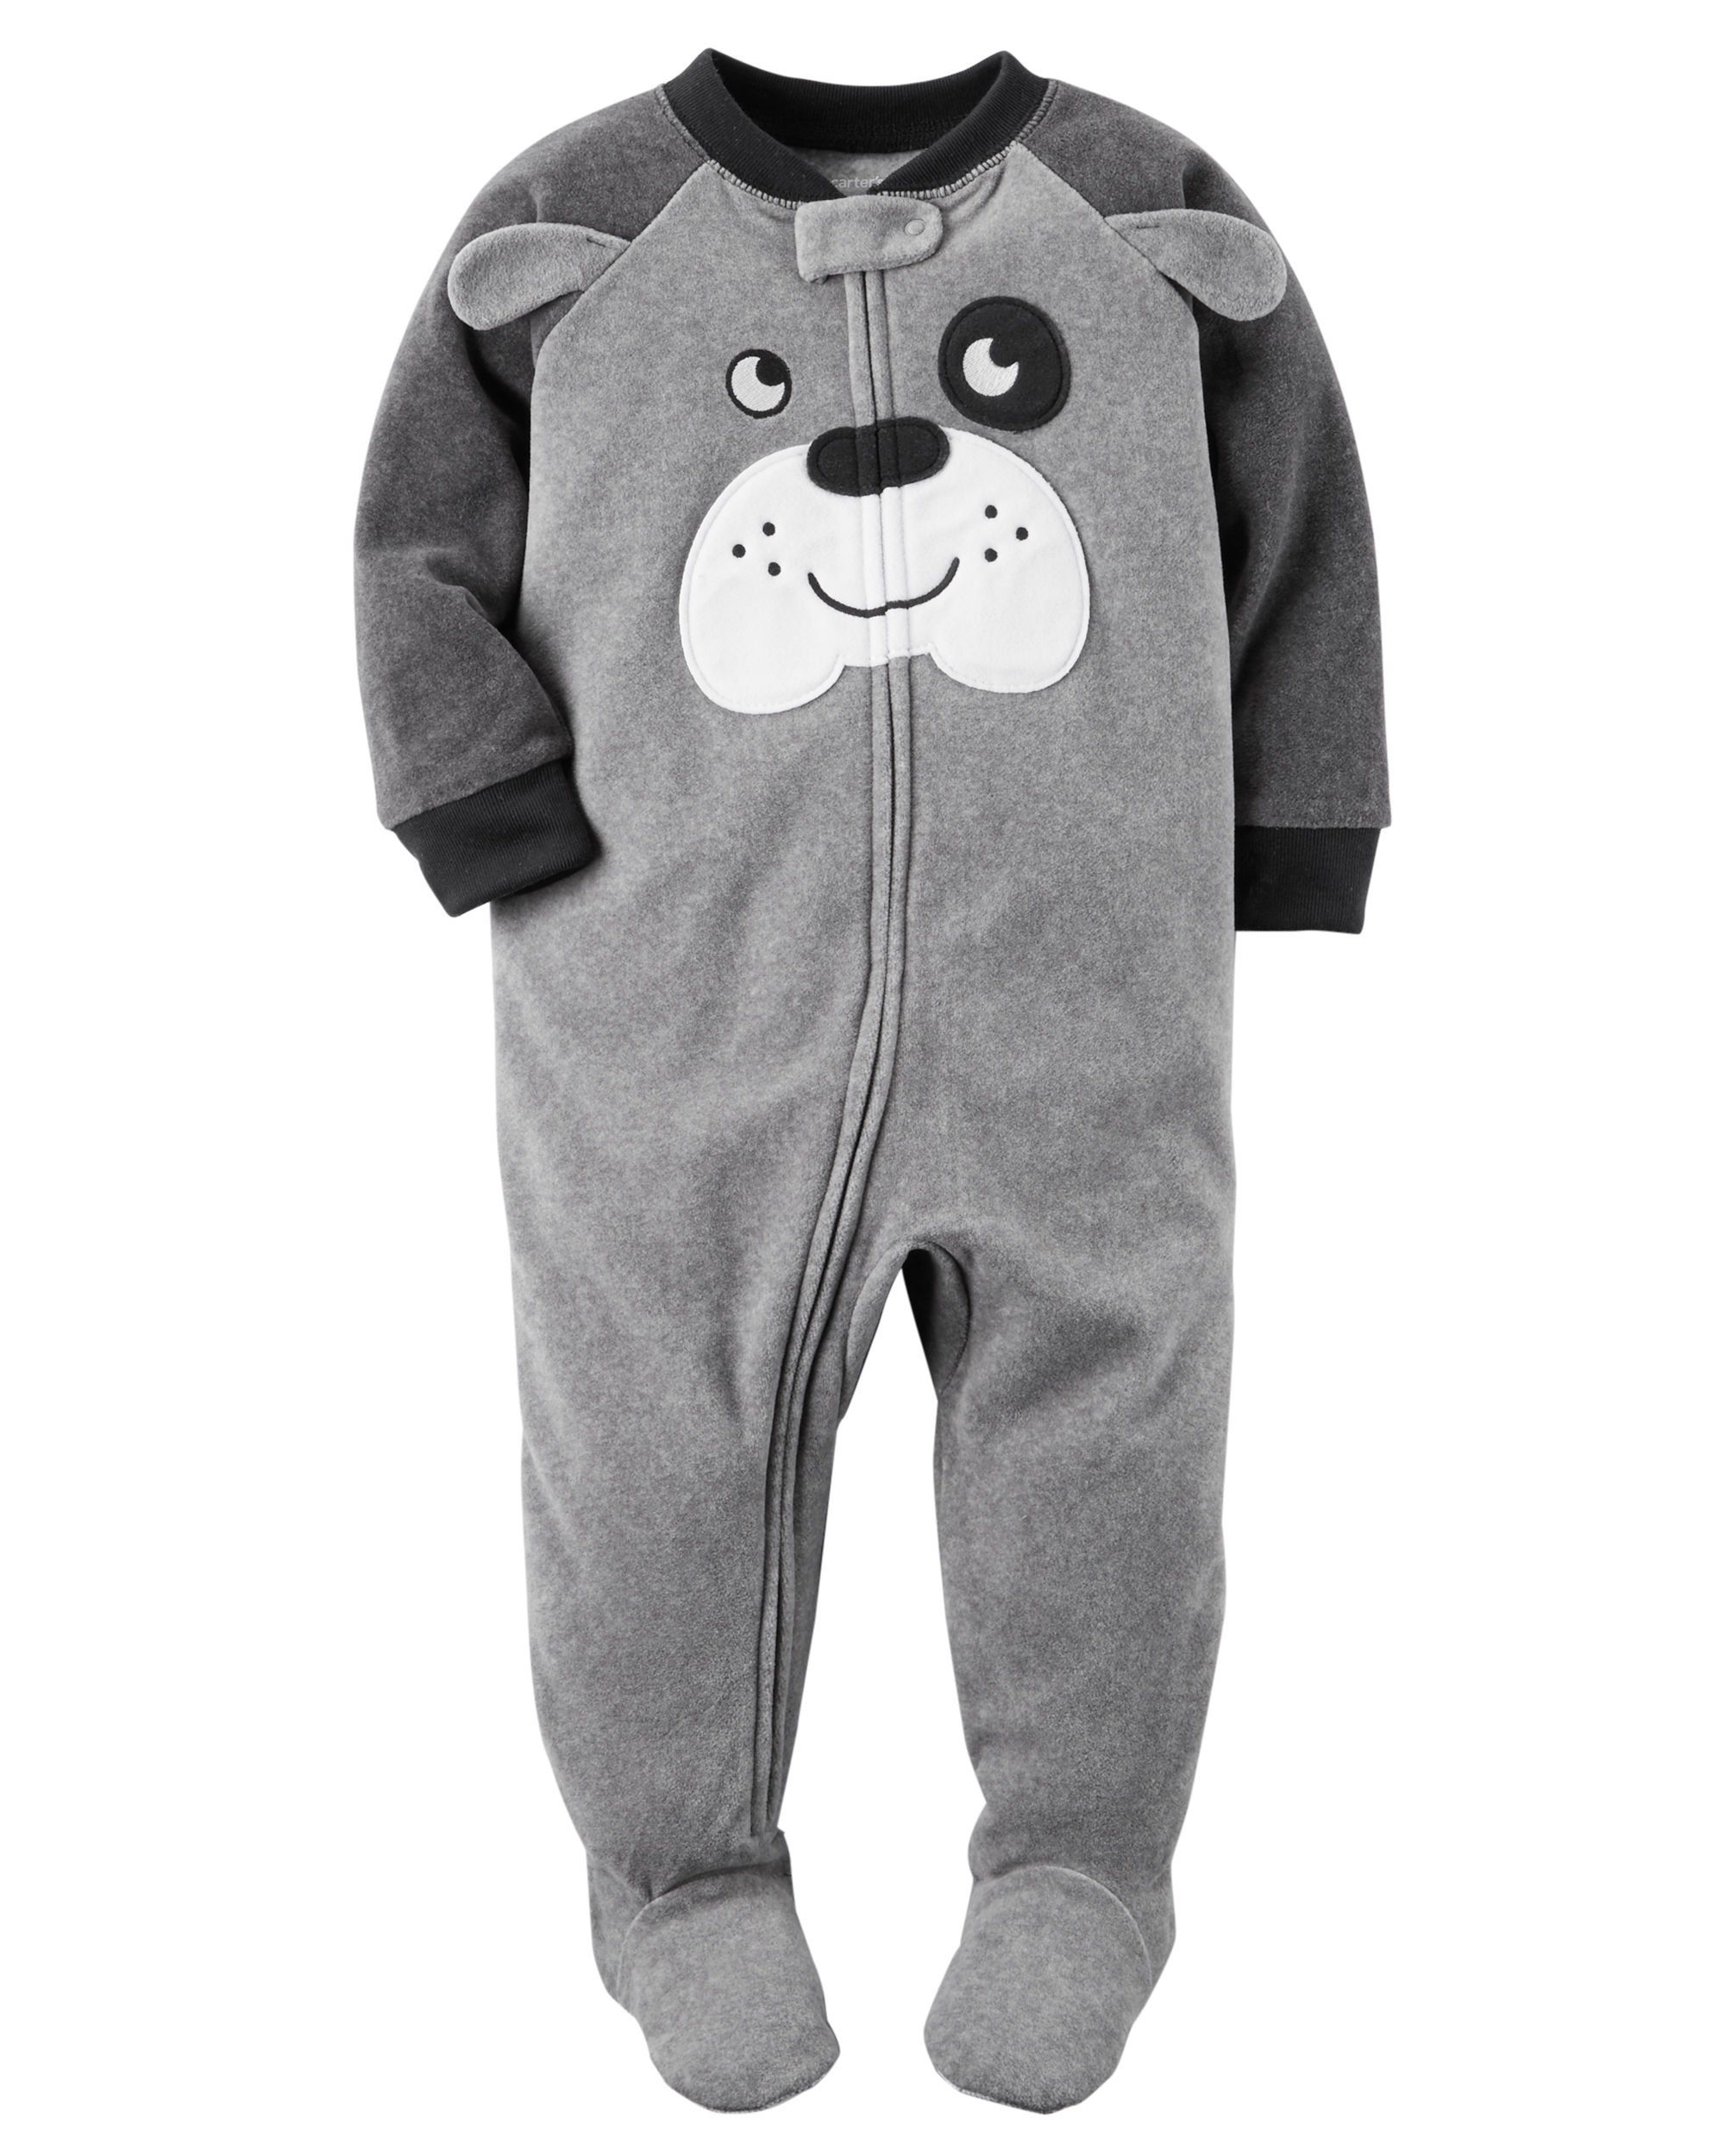 Carters Baby Toddler Boys 2 Pack Fleece Footed Pajama Sleep And Play Set 12 Months Zipper Closure Grey Dog Face A Baby Boy Pajamas Baby Boy Outfits Boy Outfits